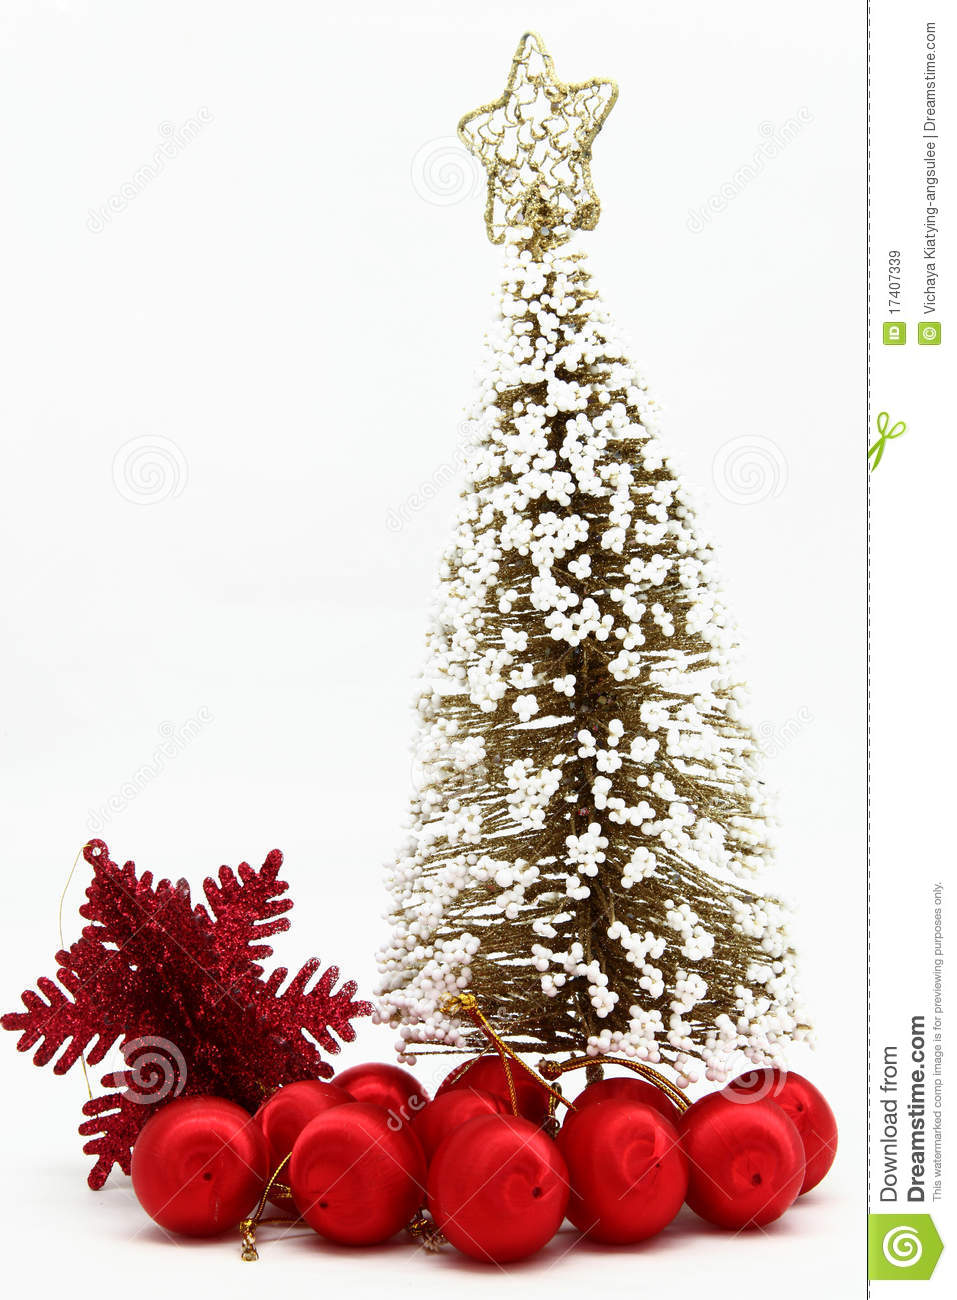 Christmas tree with red ball ornament royalty free stock